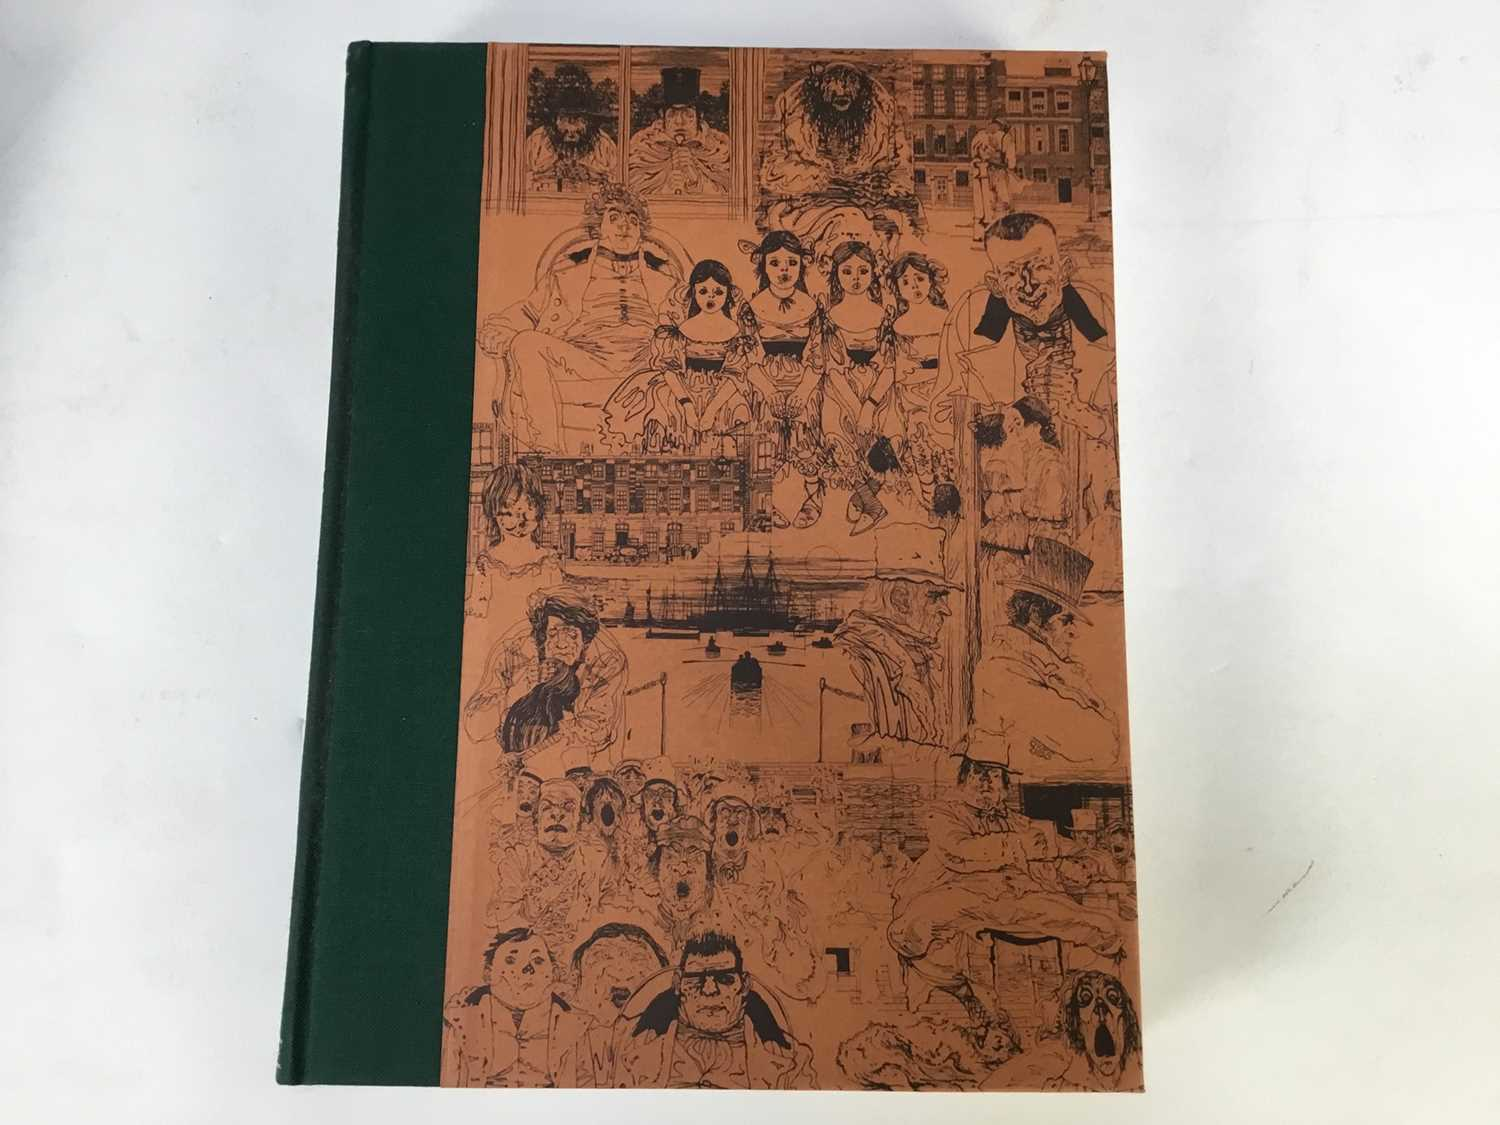 Collection of Charles Dickens books published by The Folio Society, in green slip cases, together wi - Image 7 of 11